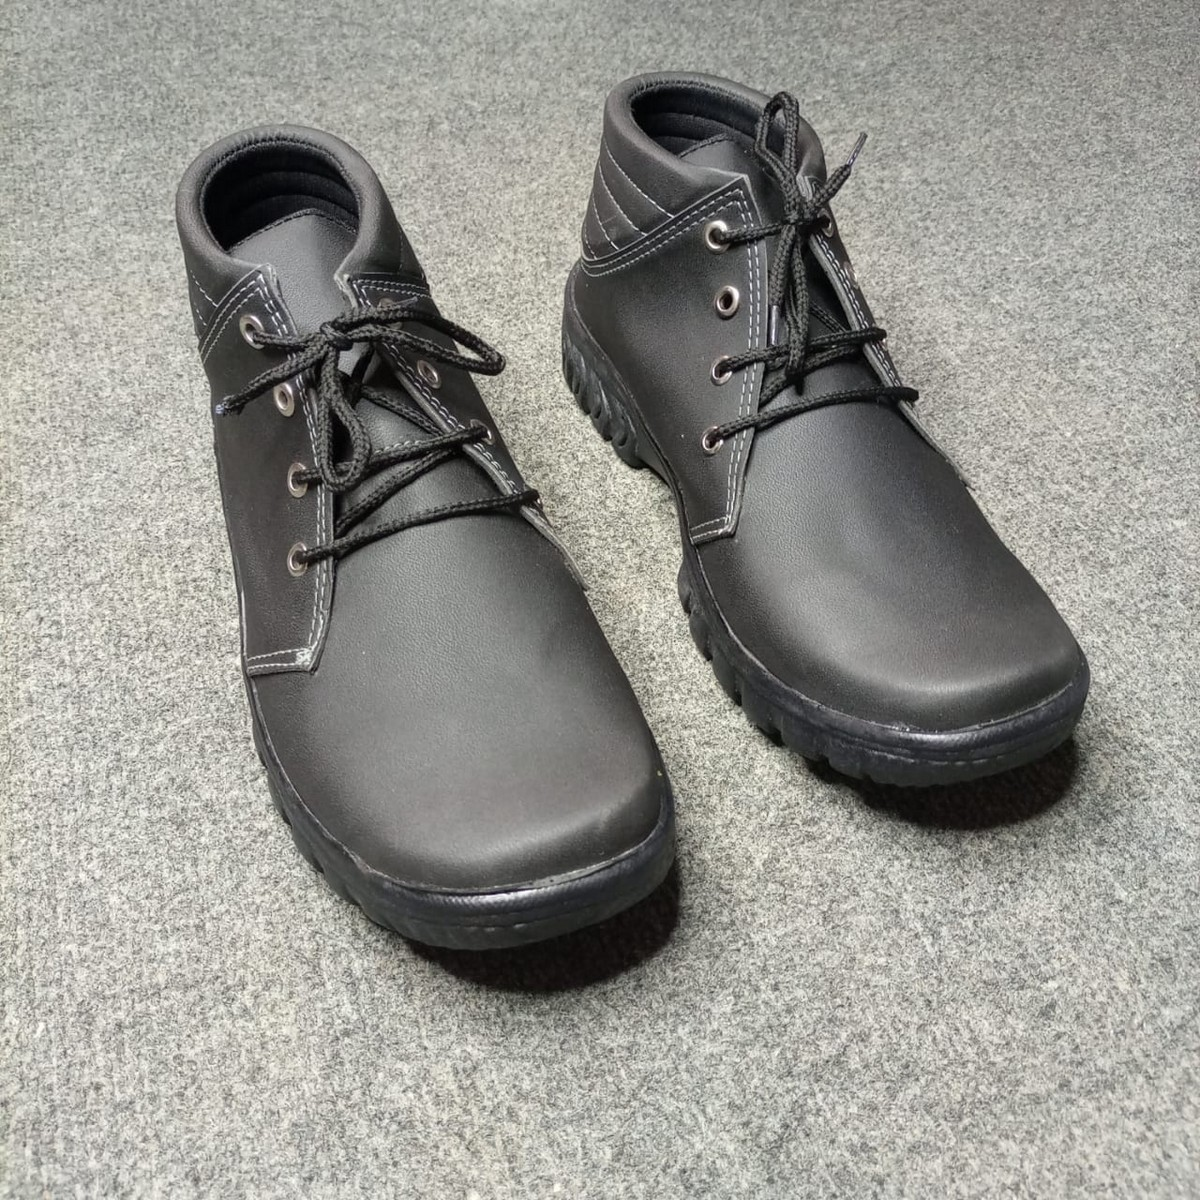 (MK) - Black Daily Use Long Shoes for Men CTBL1